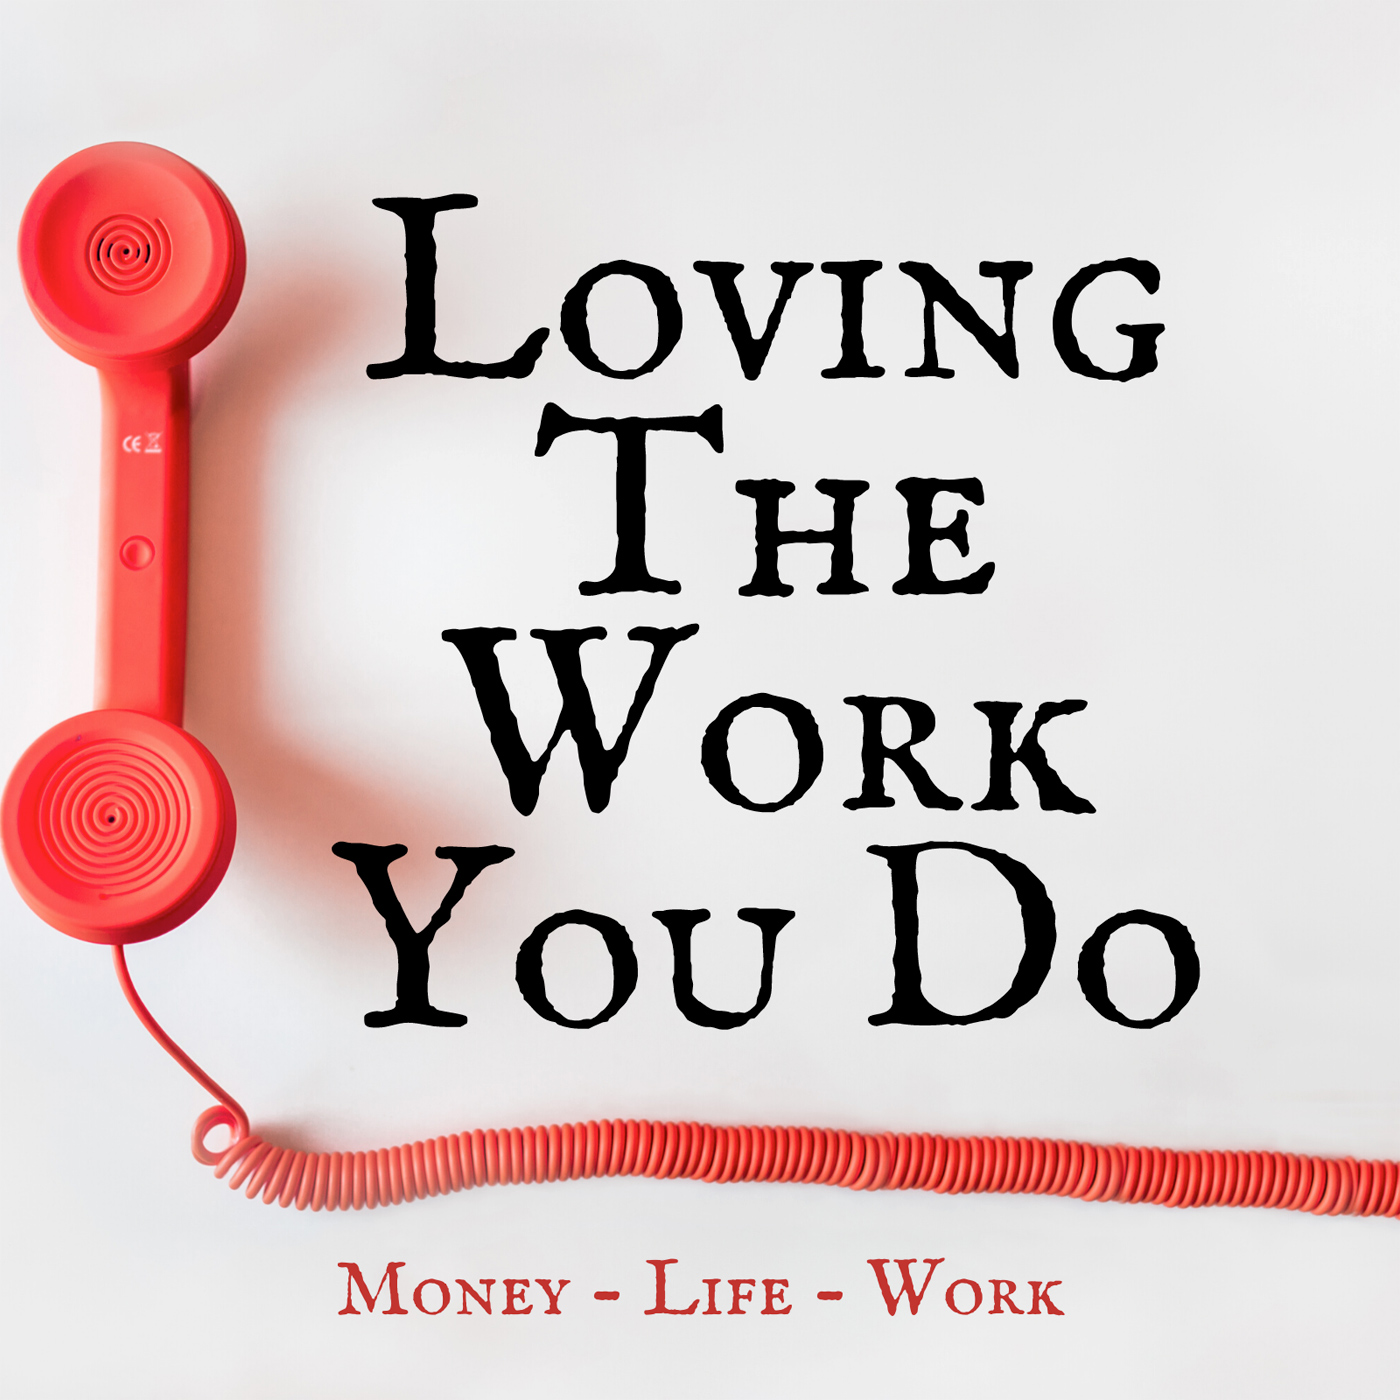 Loving The Work You Do